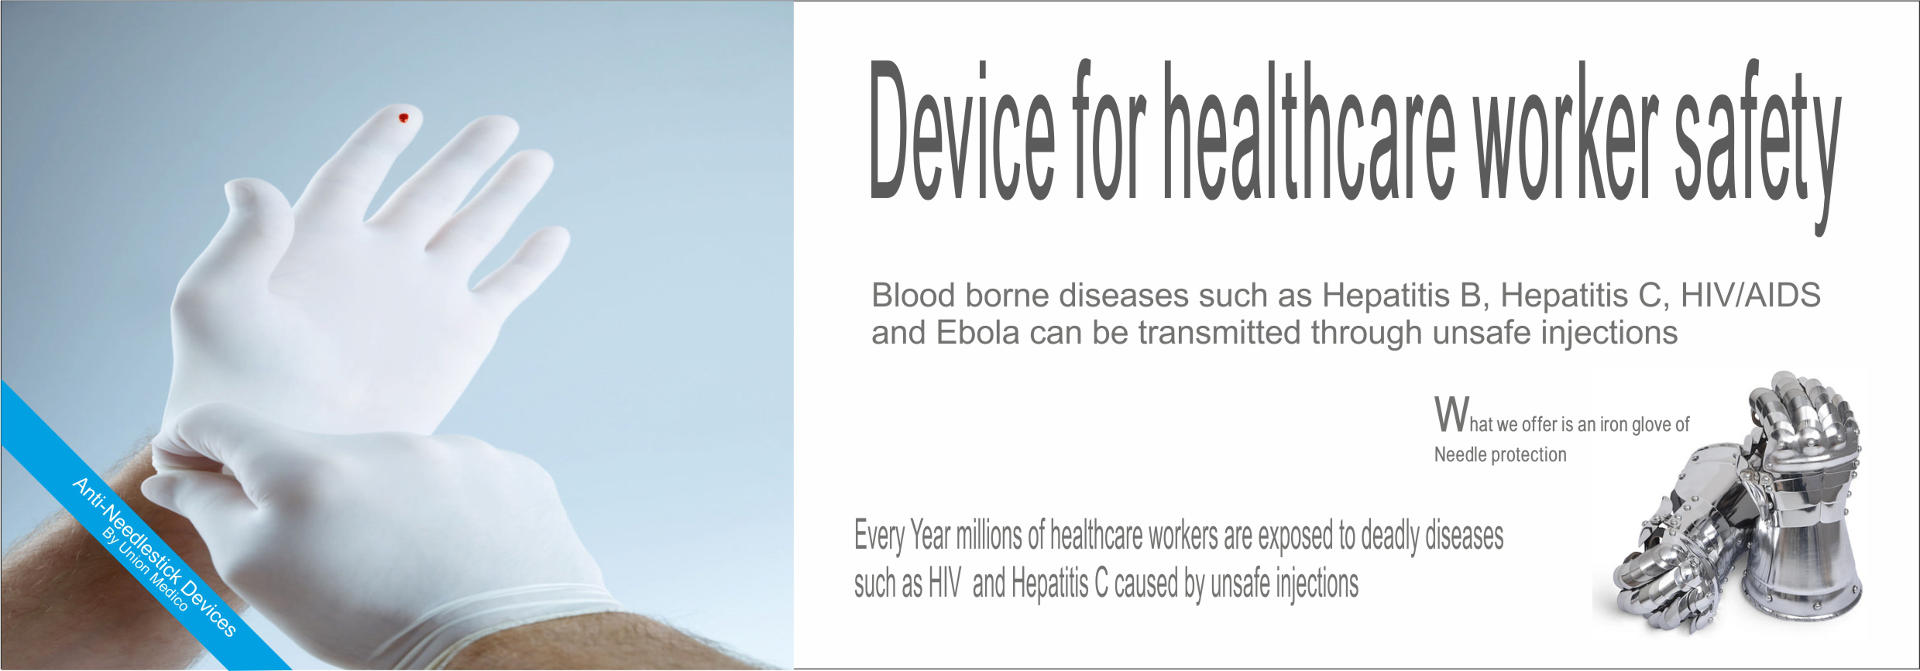 device-for-healthcare